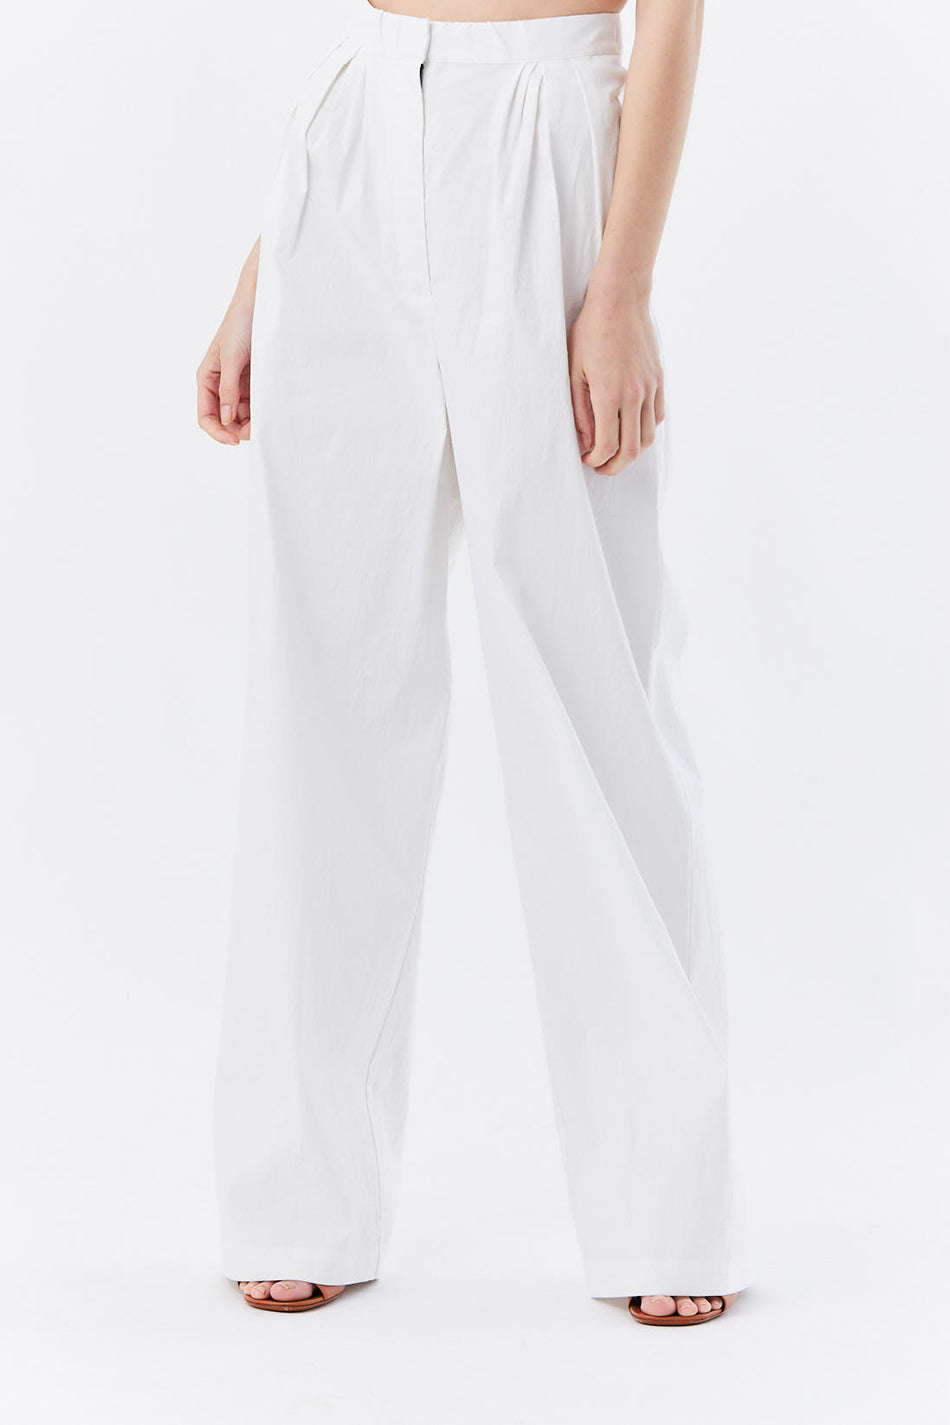 Christian Wijnants - PAMOD trouser, Off-white